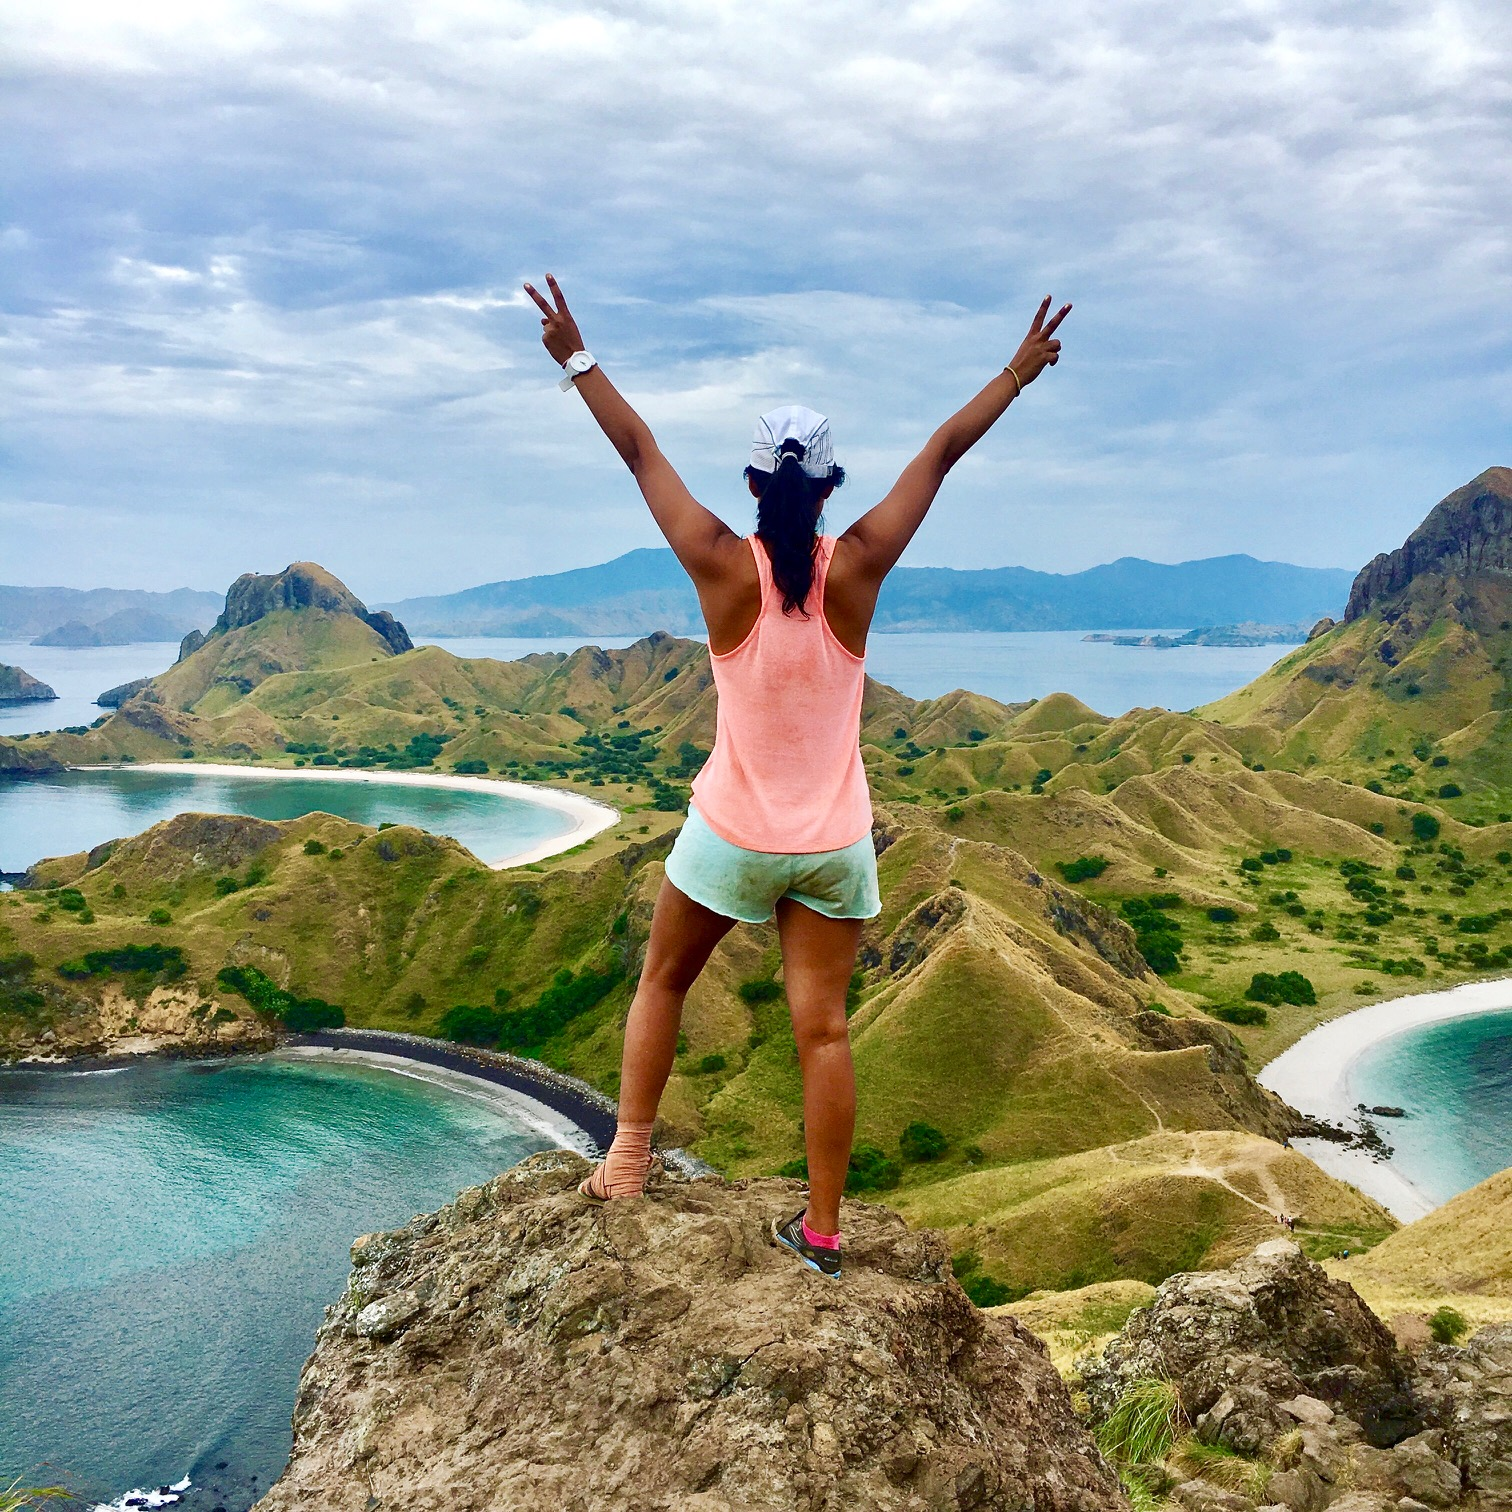 Padar_Island_Komodo_Dragon_National_Park_Labuan_Bajo_Flores_Bali_Indonesia_Hiking_TheSassyPilgrim_Solo_Trip_DIY_guide_Female_Indian_Traveller